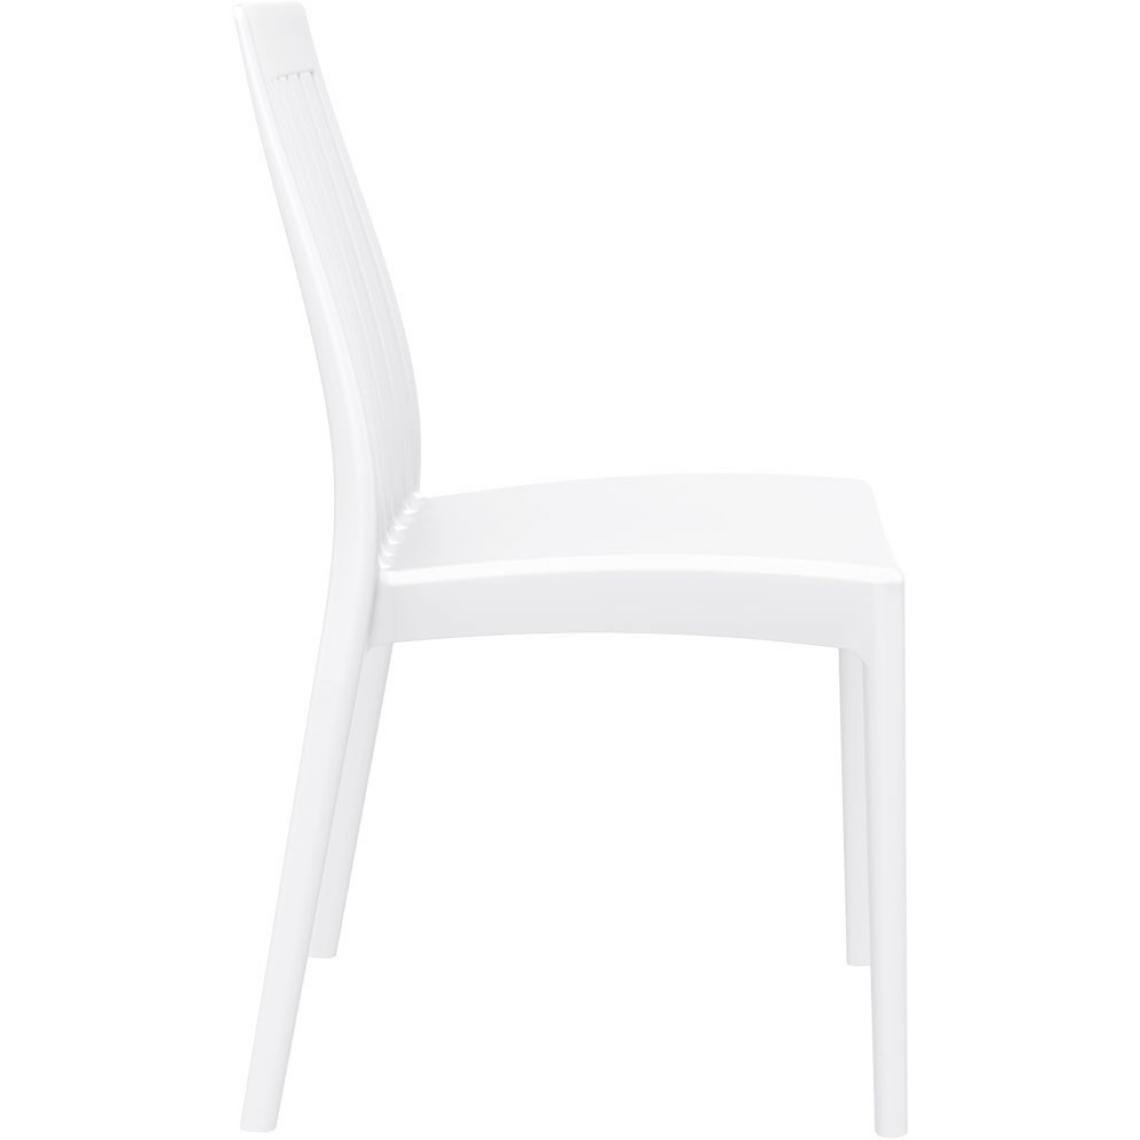 Chaises Design Blanche Chaise Design Blanche Samy 3 Suisses